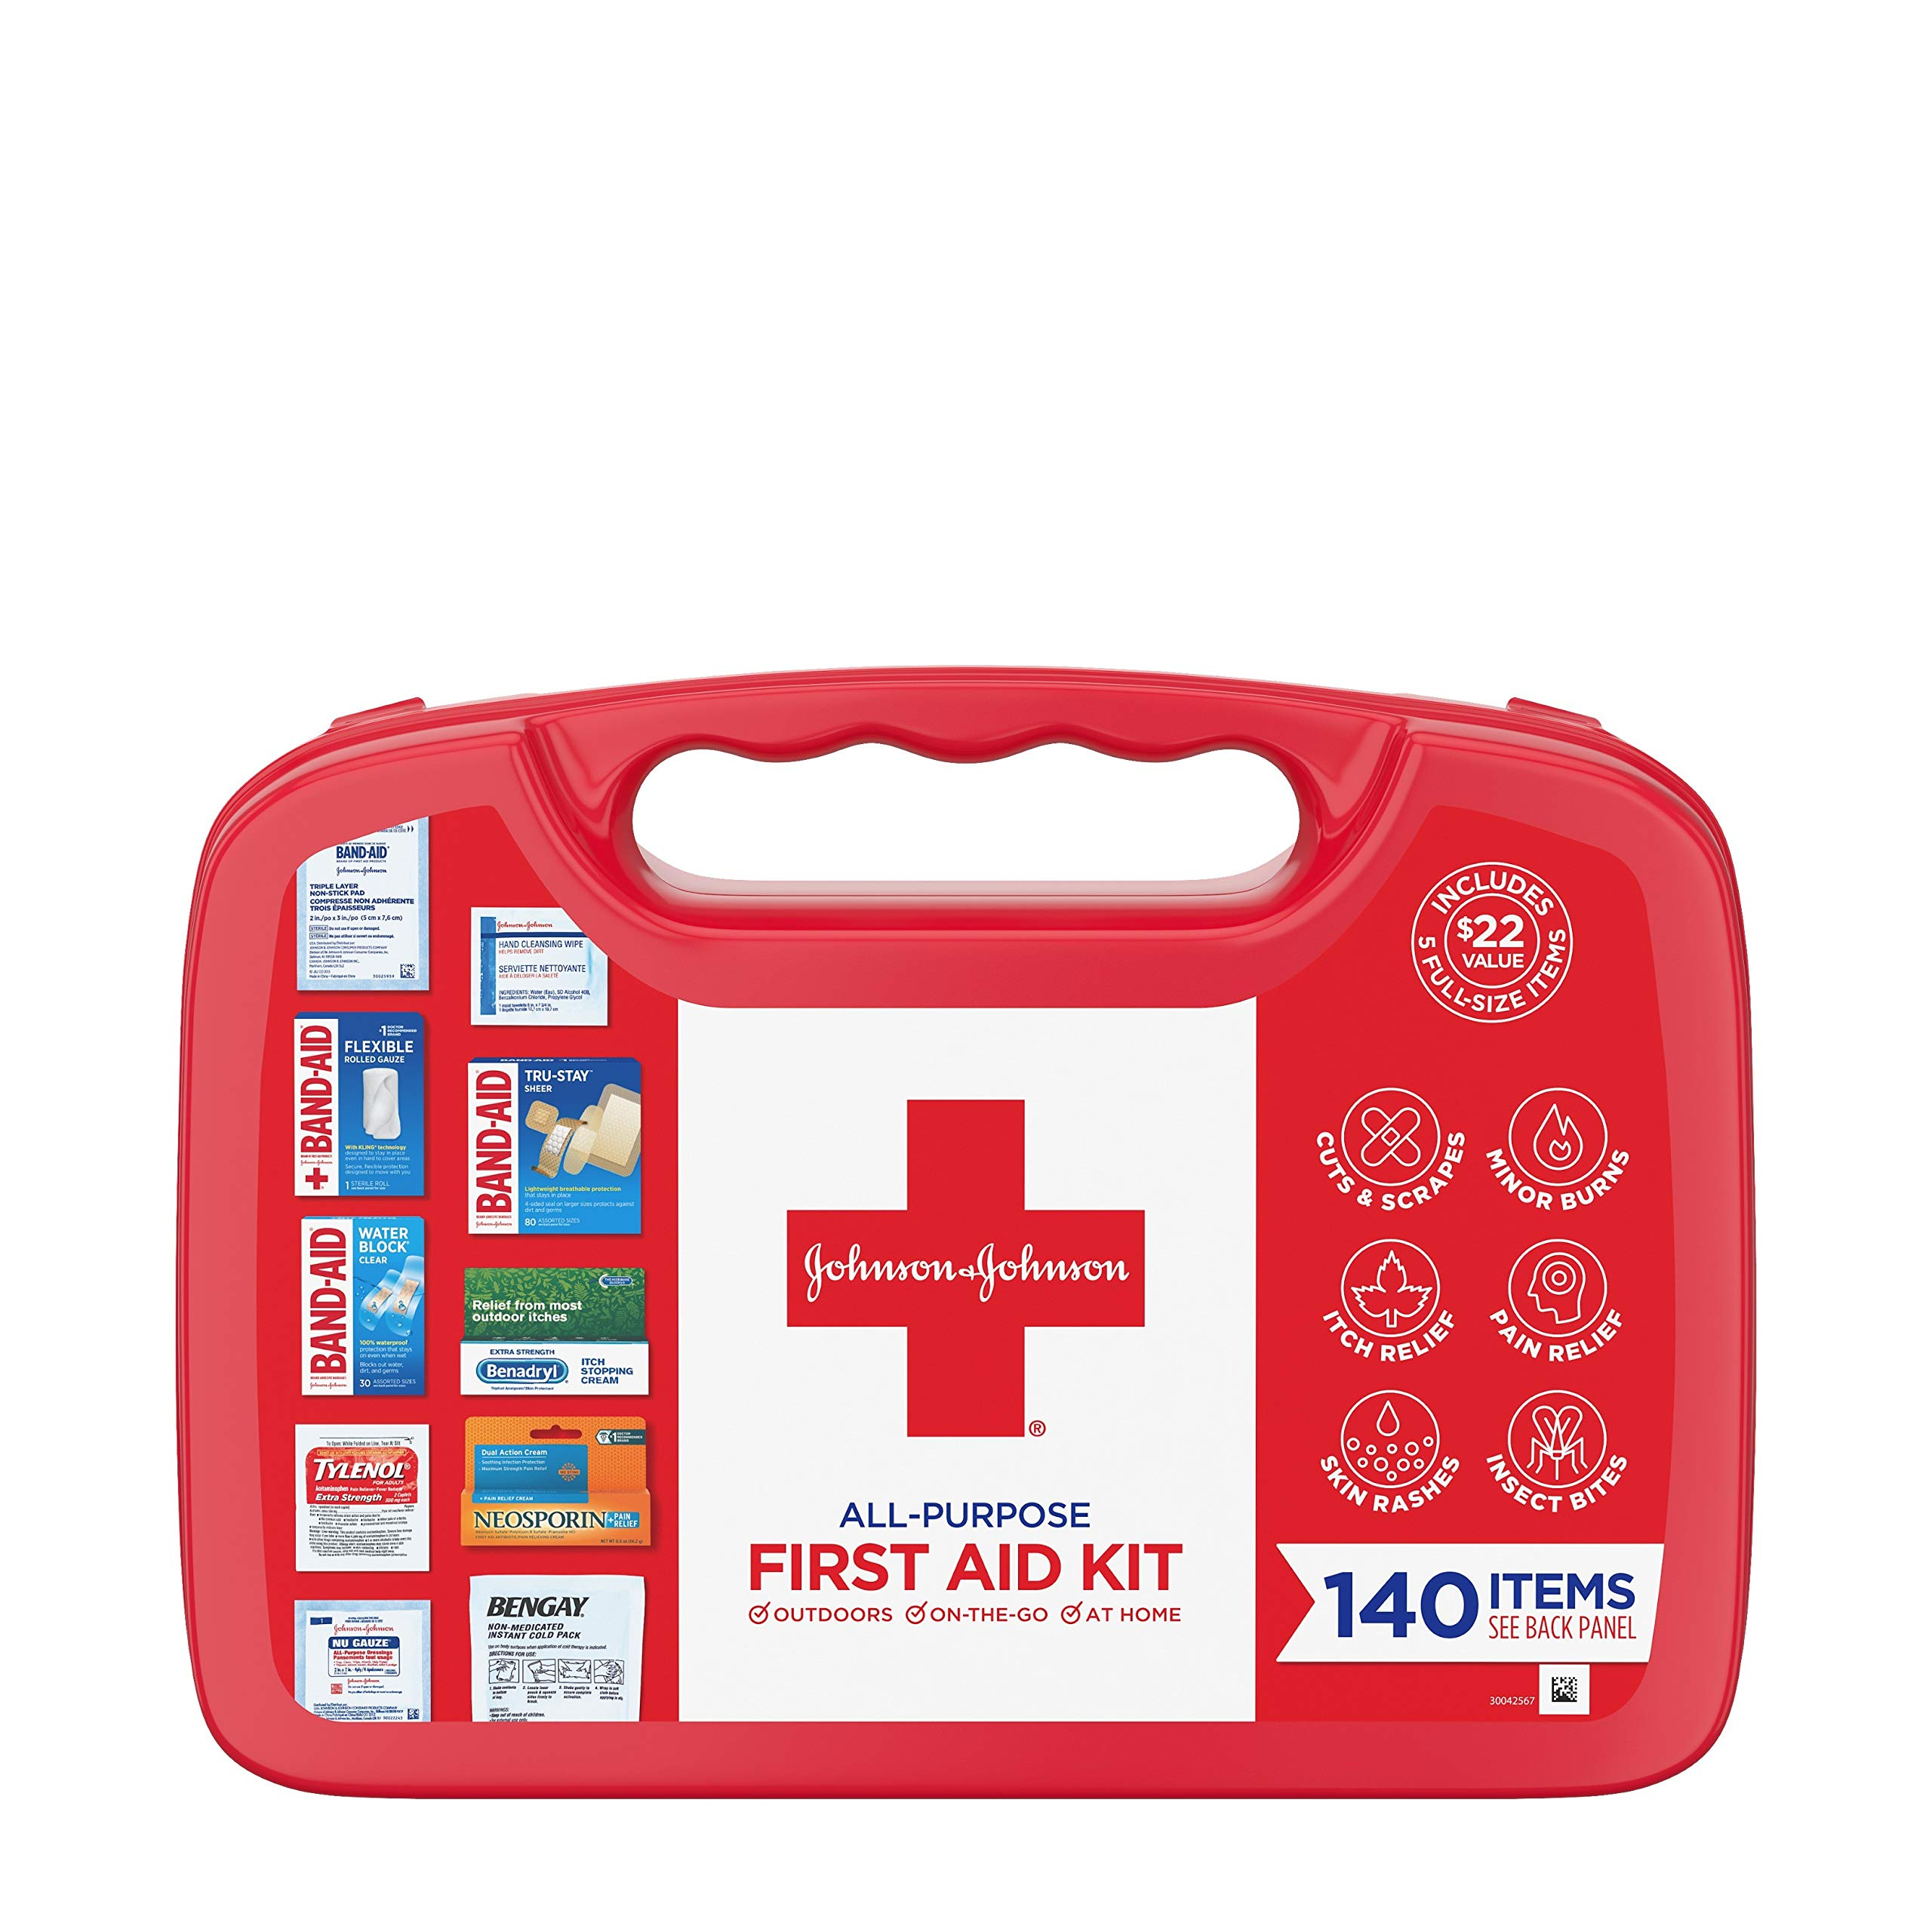 Johnson & Johnson All-Purpose Portable Compact Emergency First Aid Kit for Travel Home & Car, 140 pc by Band-Aid